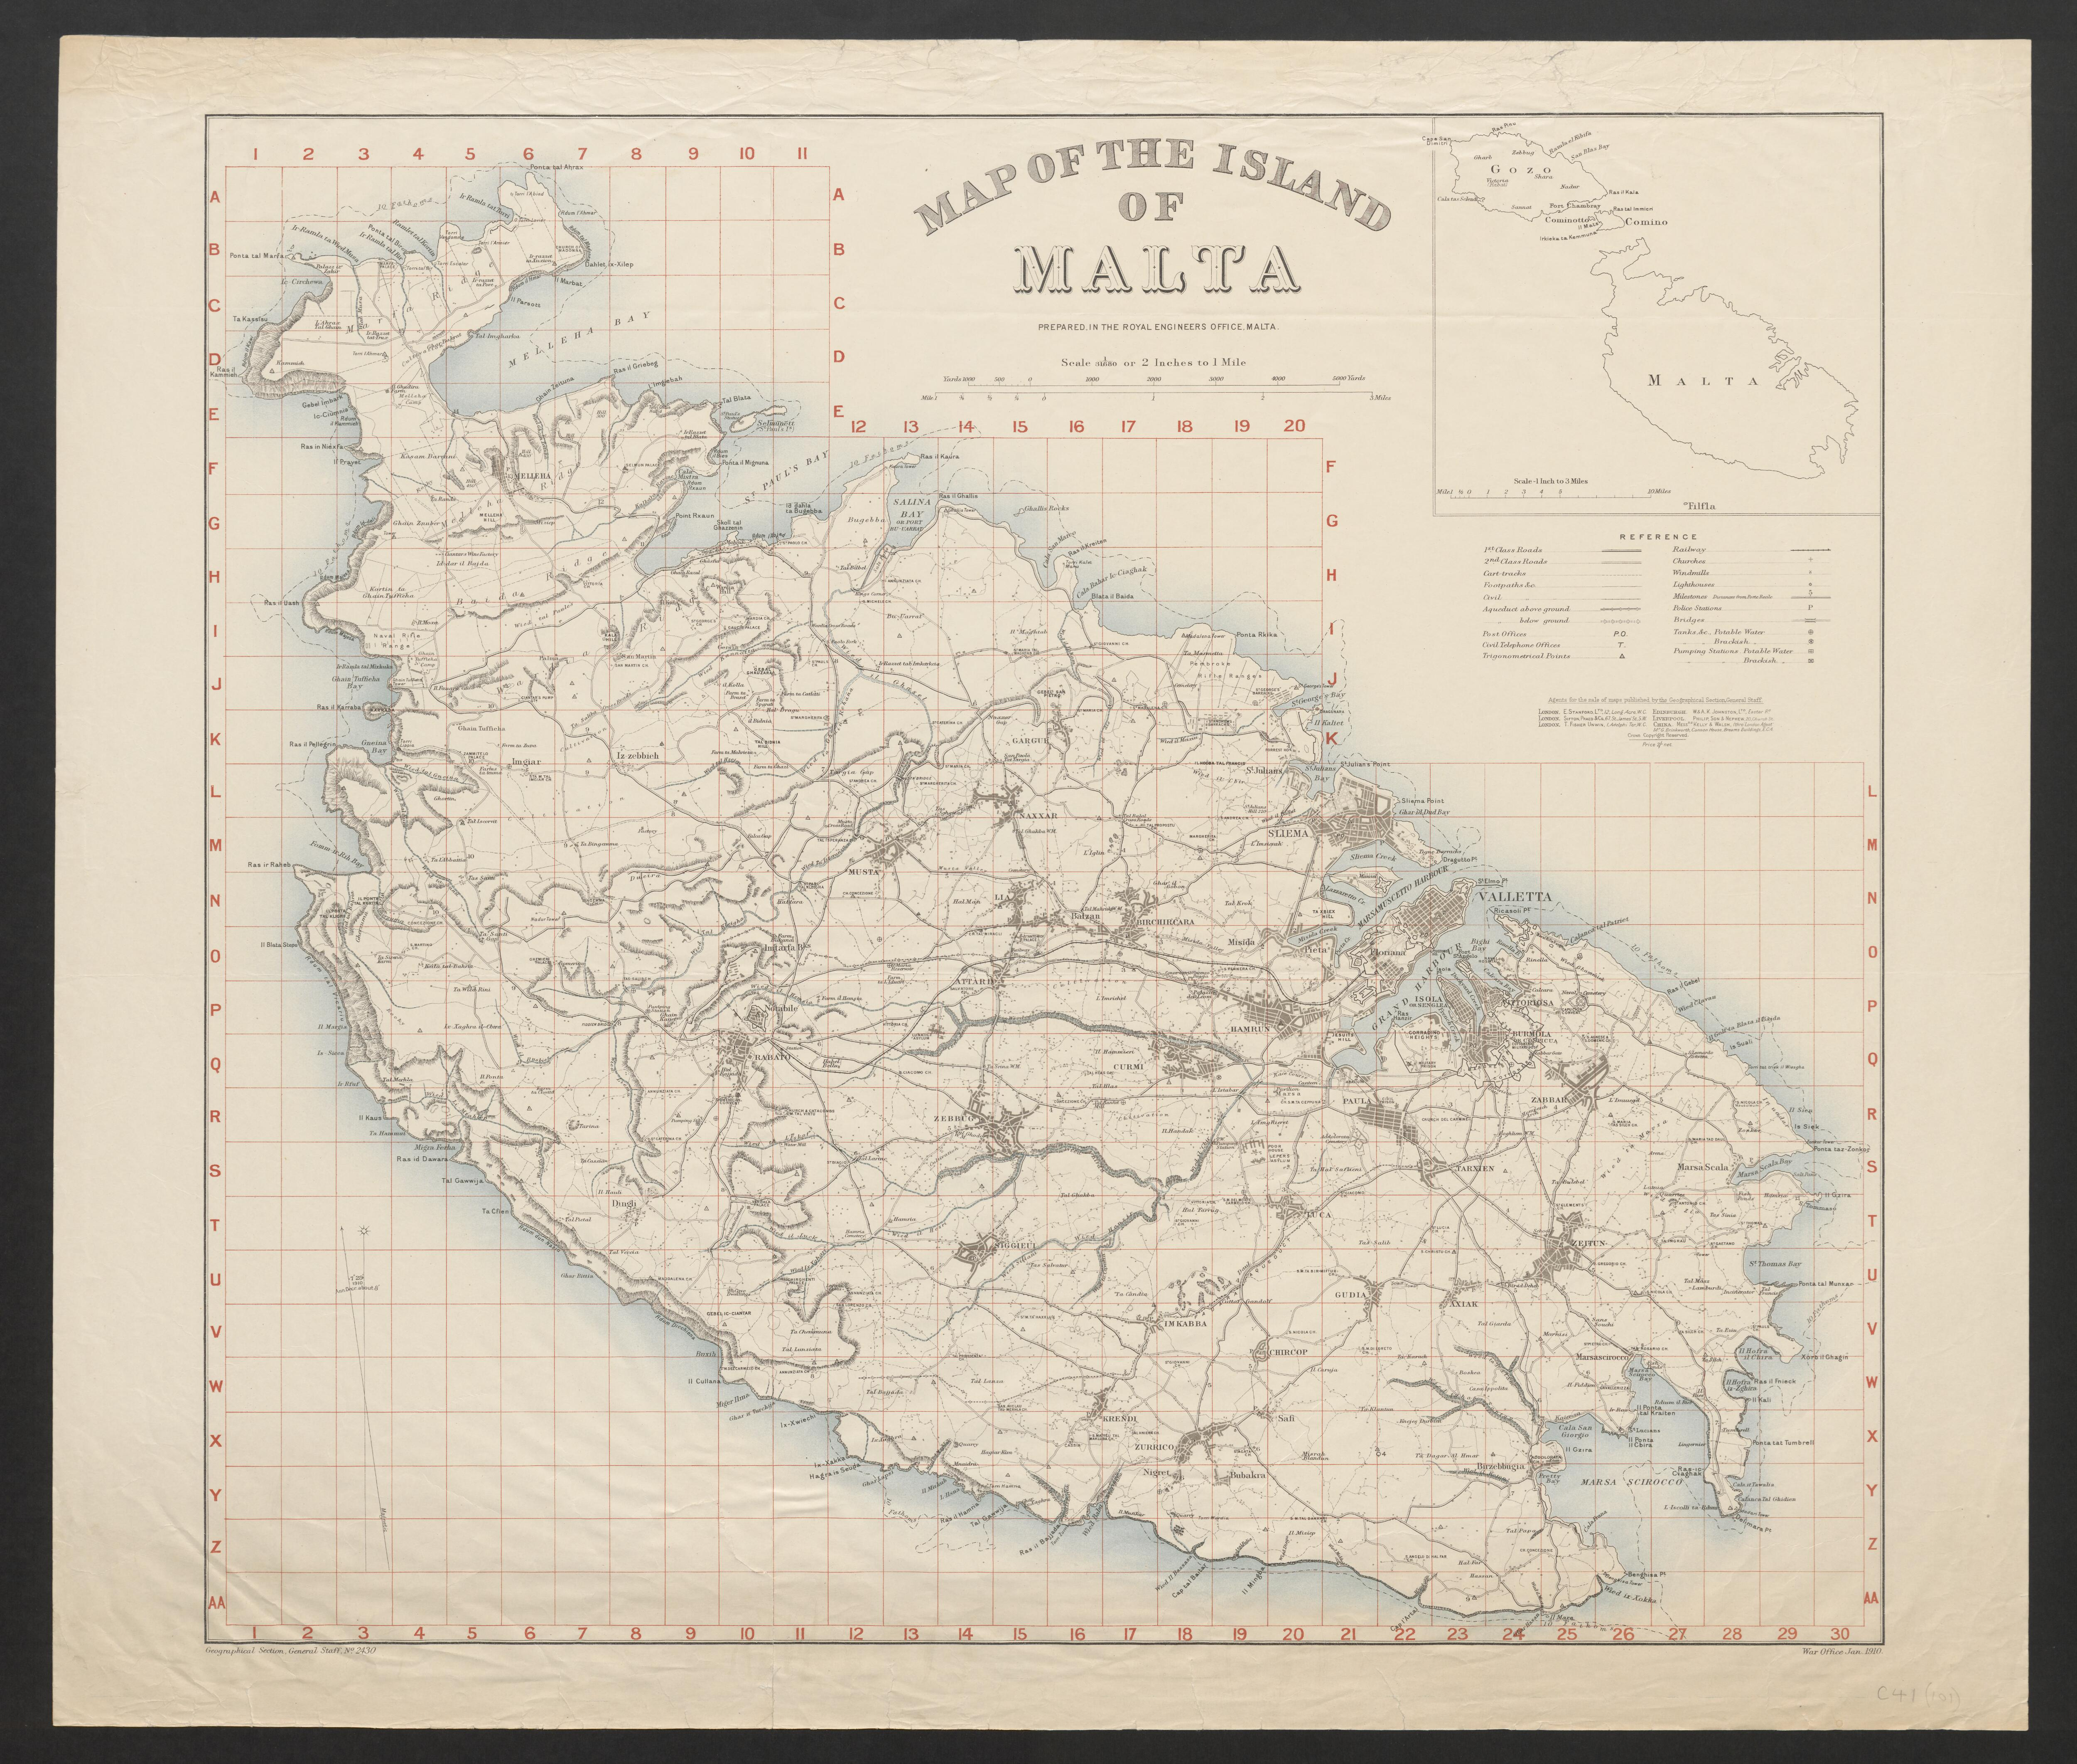 Picture of: File Map Of The Island Of Malta 5003843 Jpg Wikimedia Commons